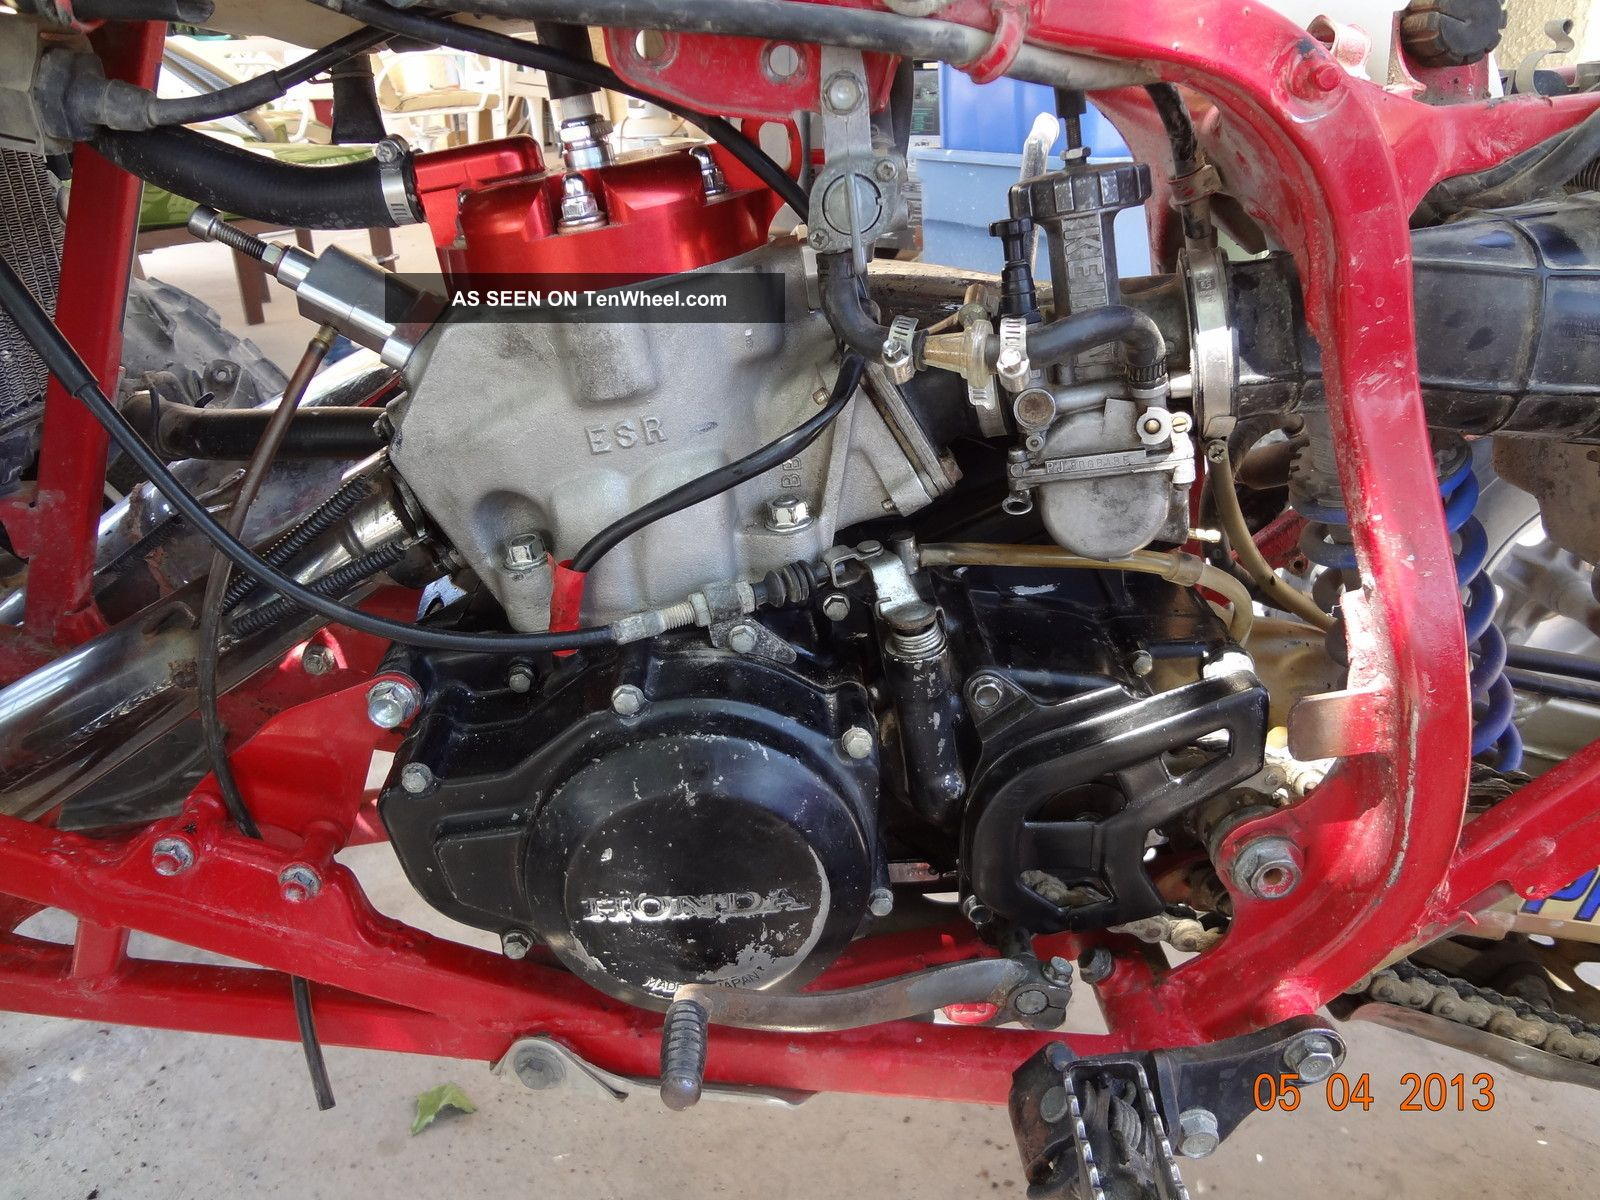 Honda Trx Fourtrax H Usa Serial Numbers Mediumhu Serial E also Mza L furthermore Trx Fm Electrical Issues Mice Honda Atv Forum With Honda Rancher Wiring Harness Diagram moreover  also Circuit Elec Global. on honda trx 250 wiring diagram